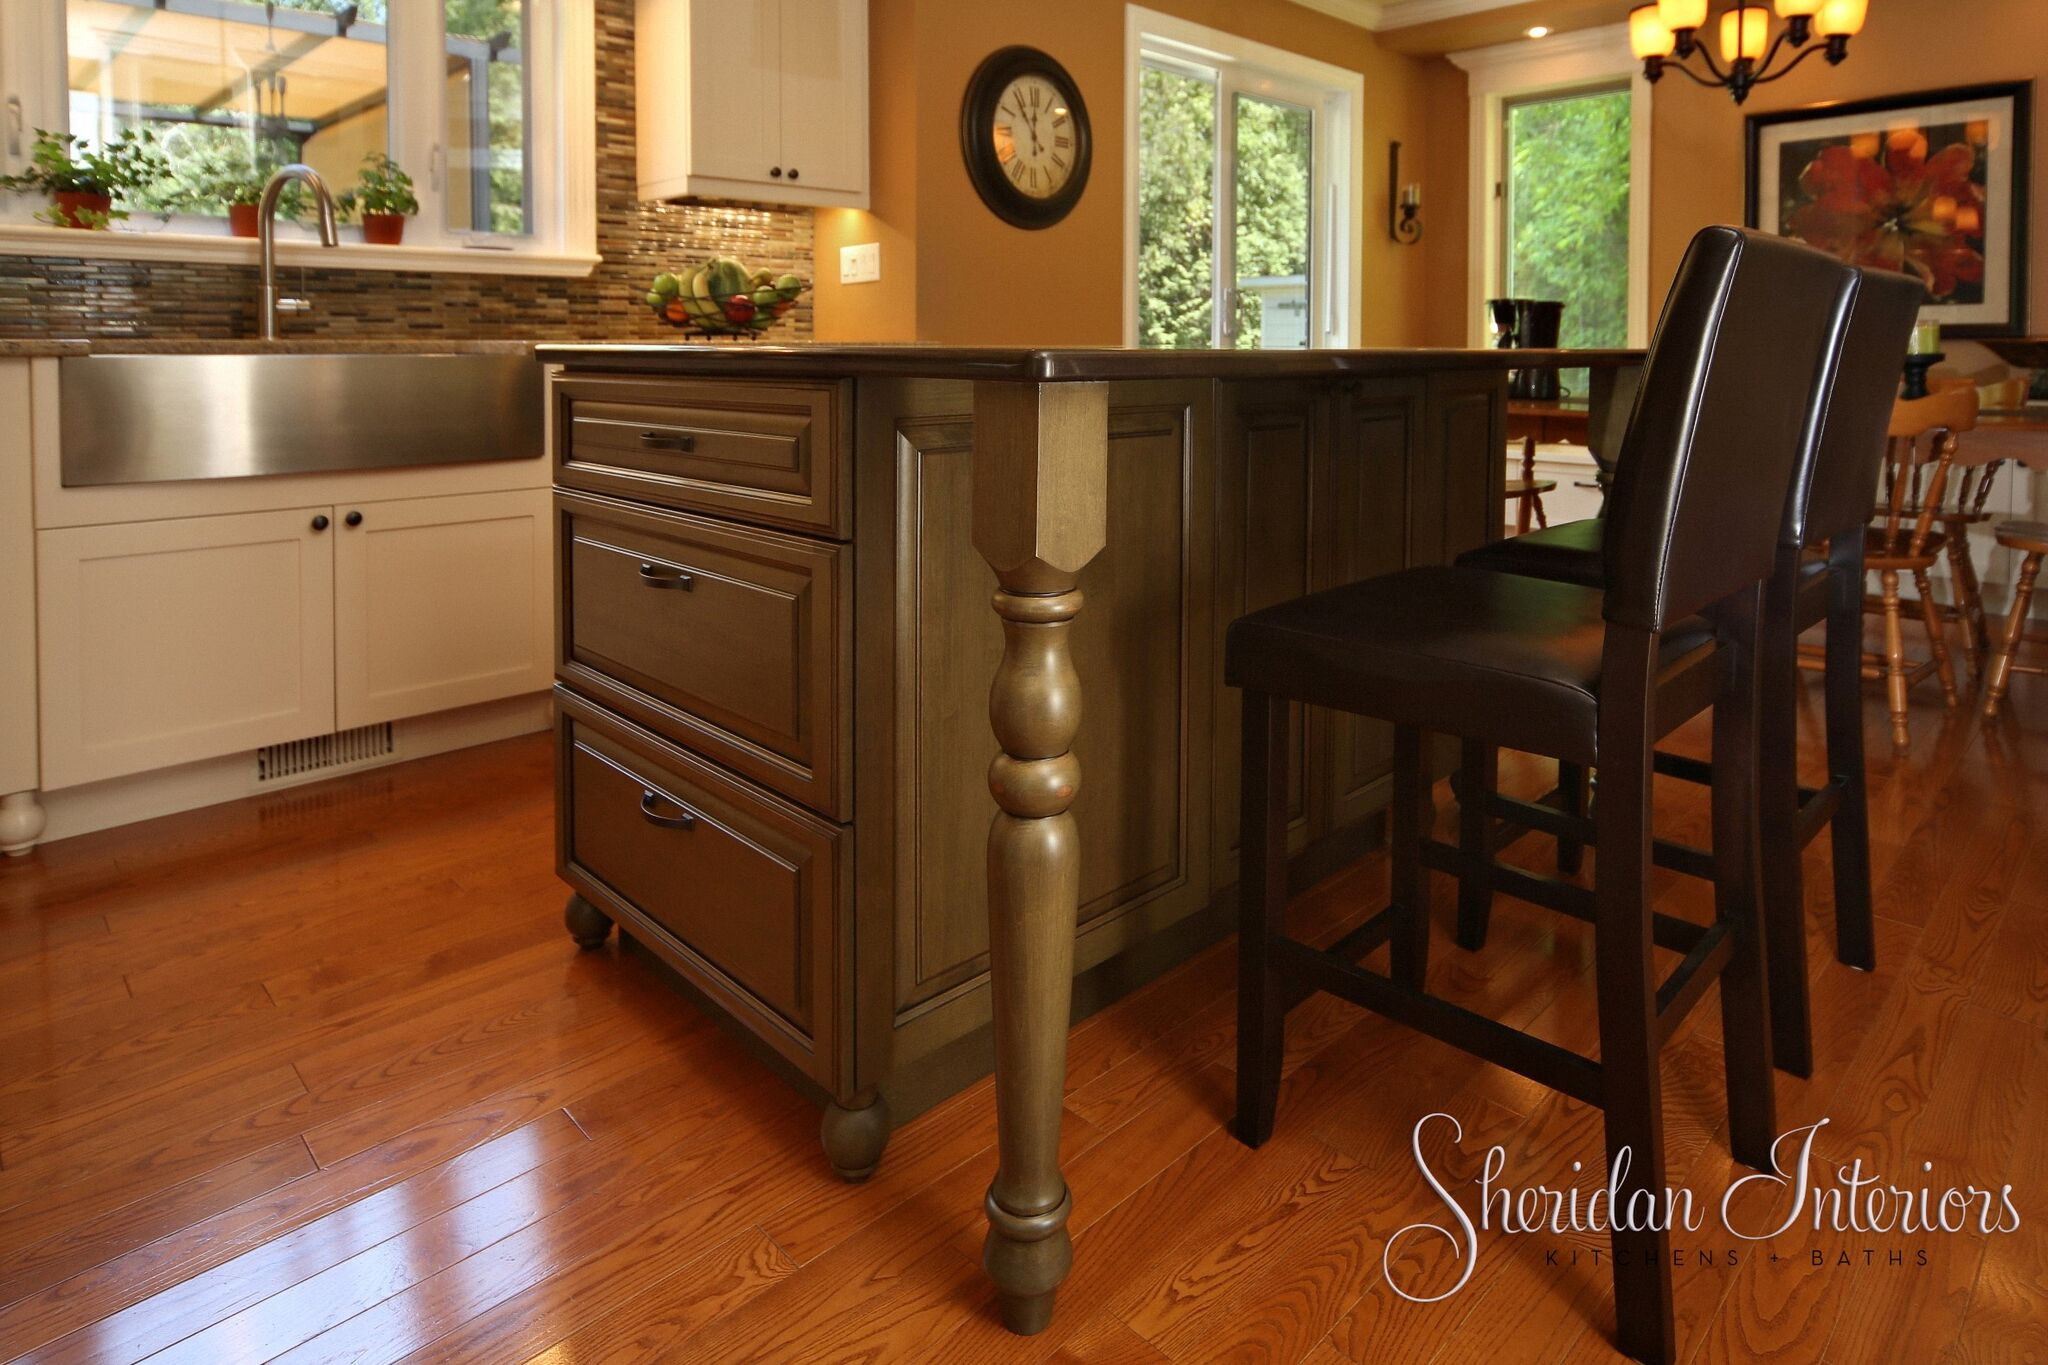 Country Kitchen with Antique Cabinets - Sheridan Interiors